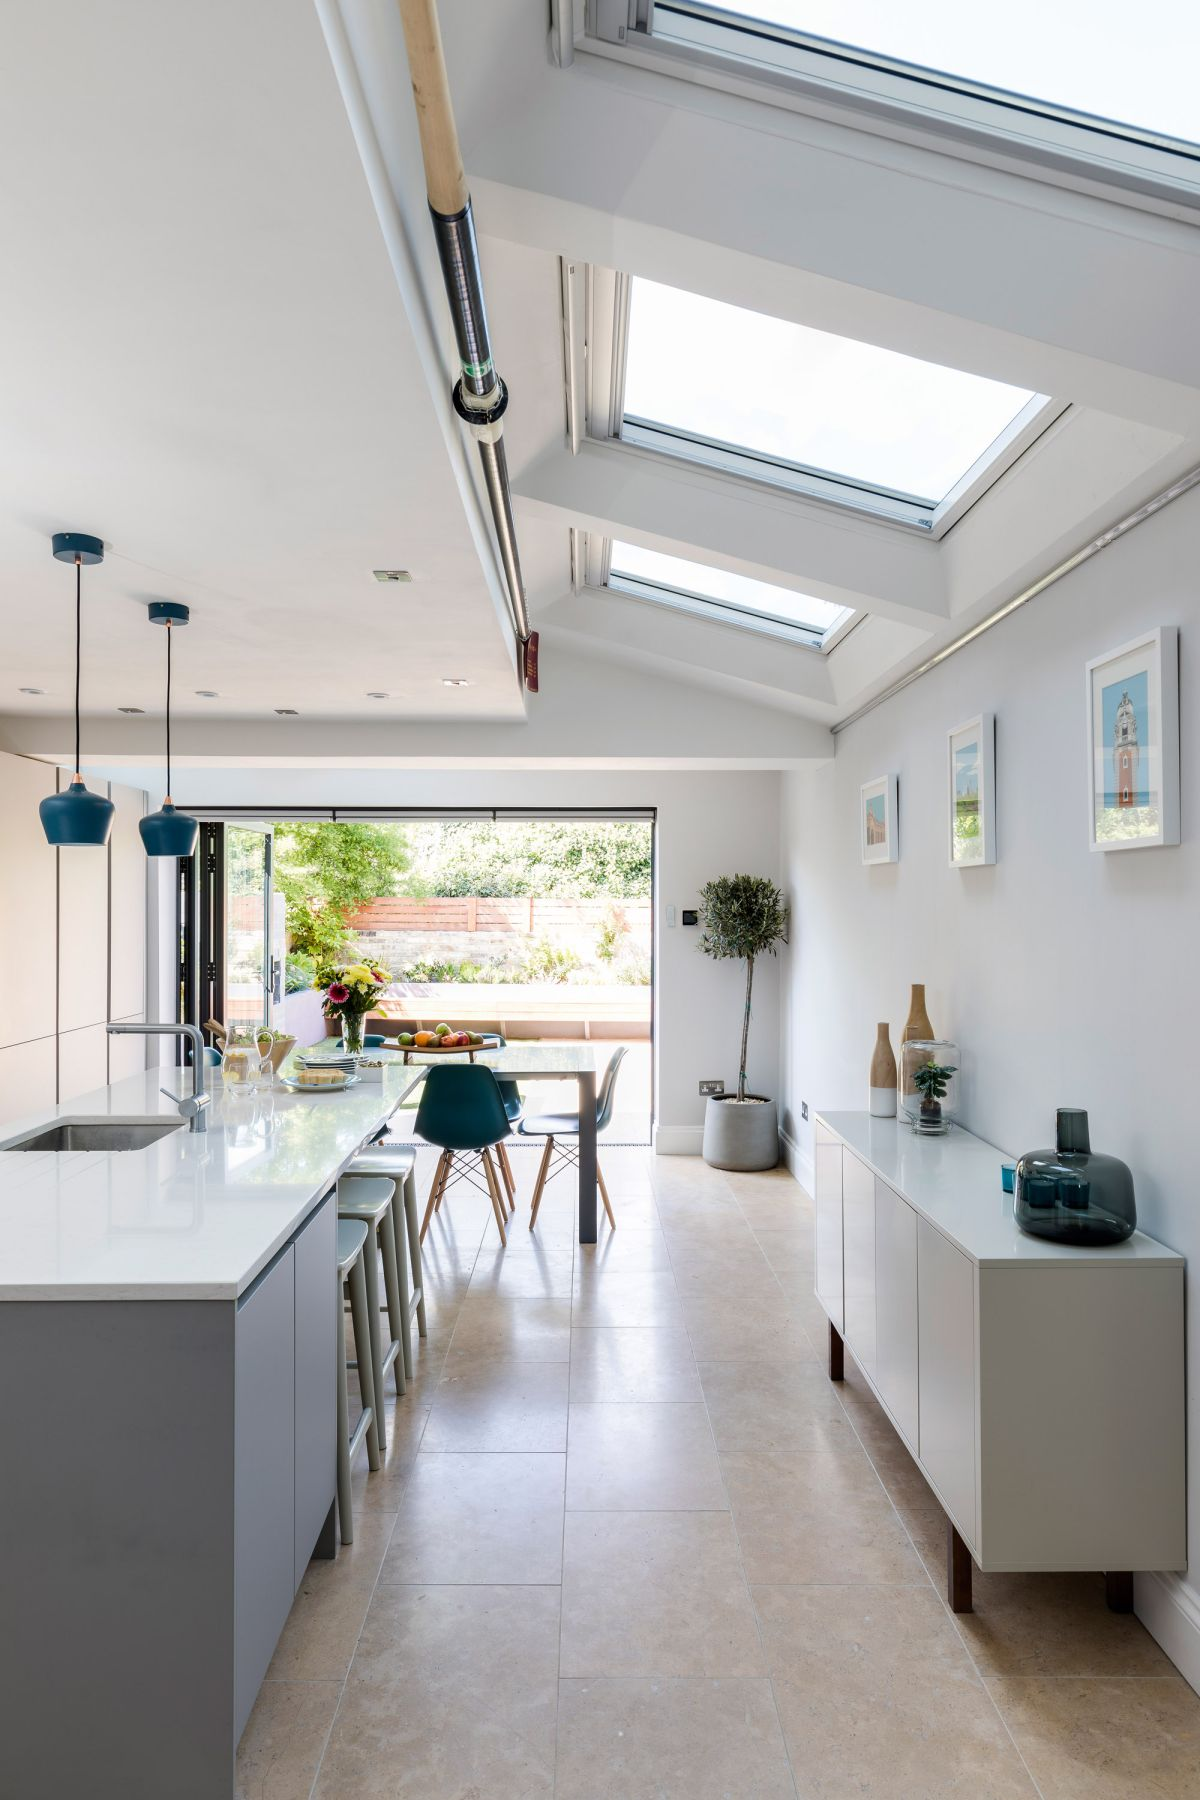 Take a tour of this modern kitchen extension that's perfect for entertaining